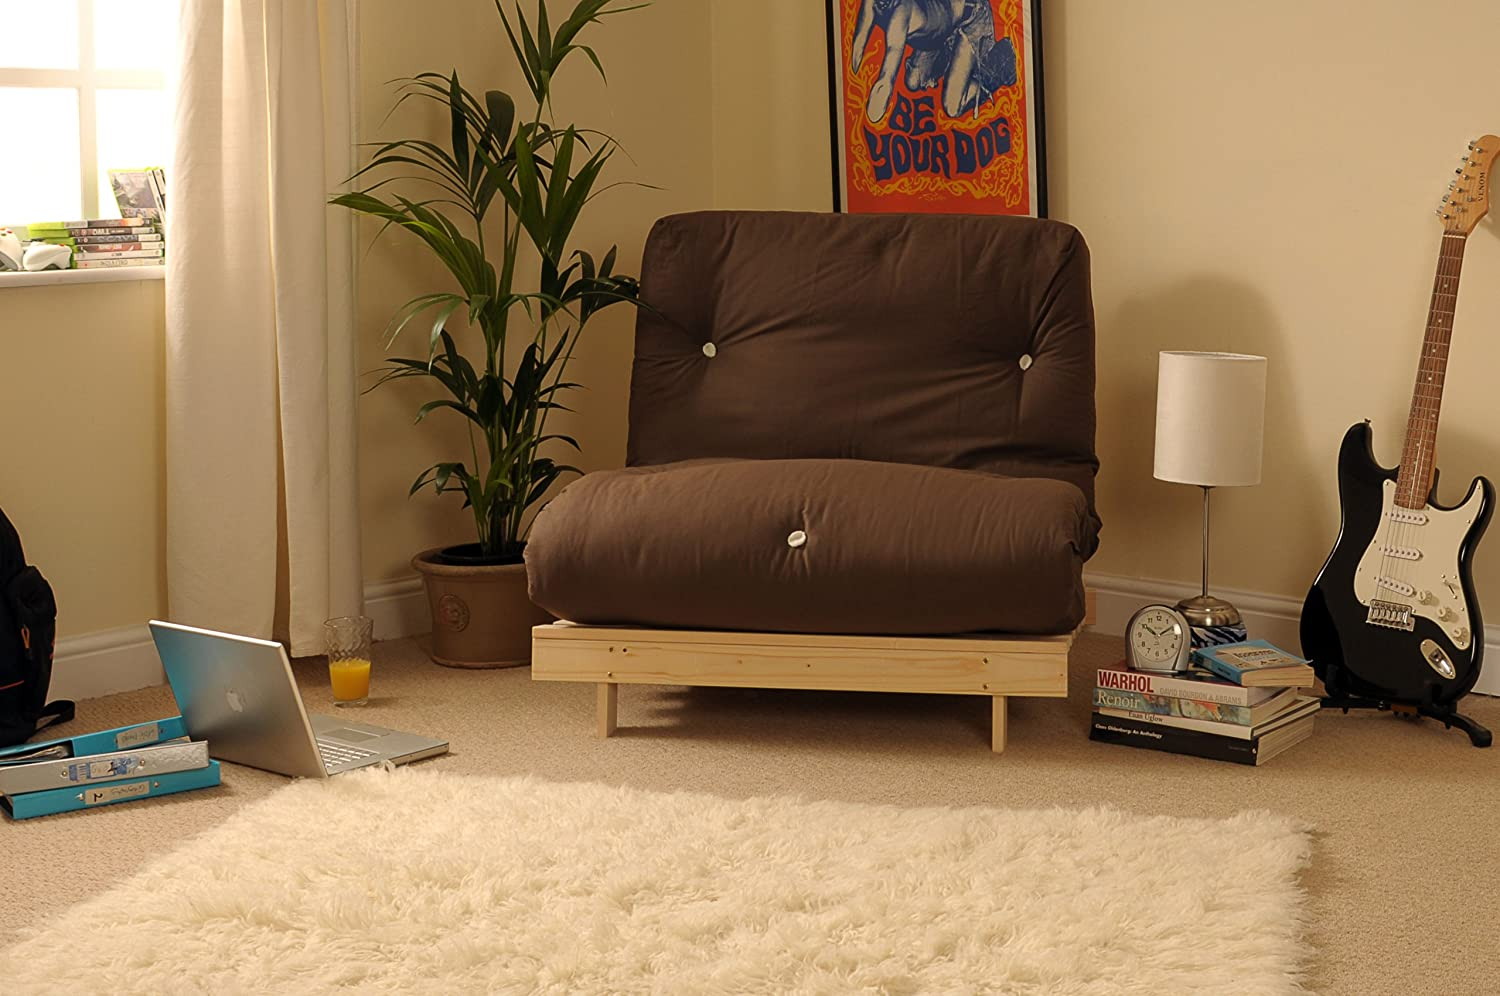 Comfy Living 3ft (90cm) Single Wooden Futon with CHOCOLATE Mattress